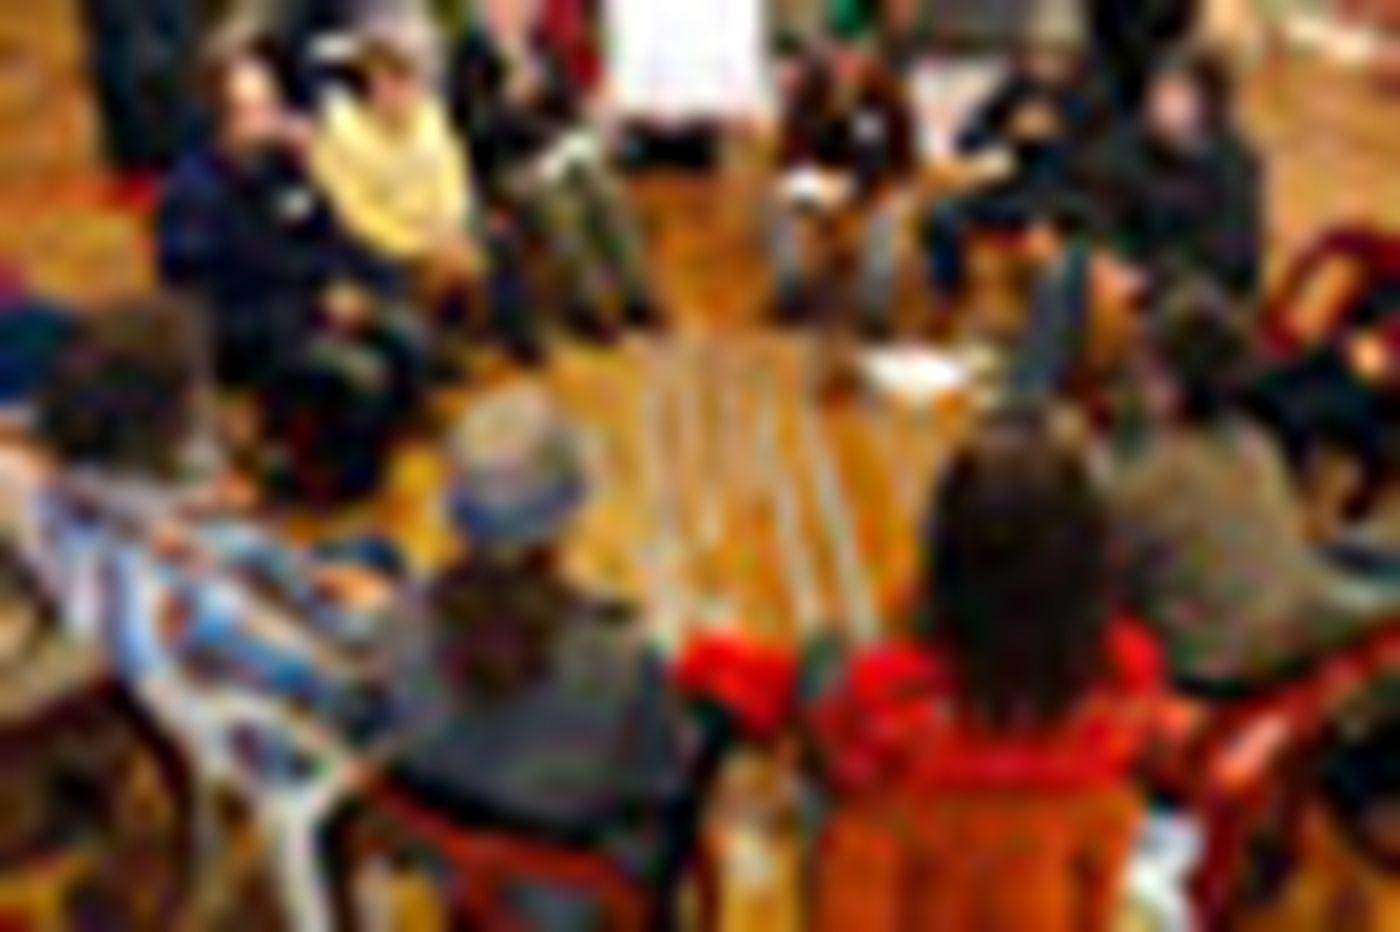 Occupy activists plan action in Iowa